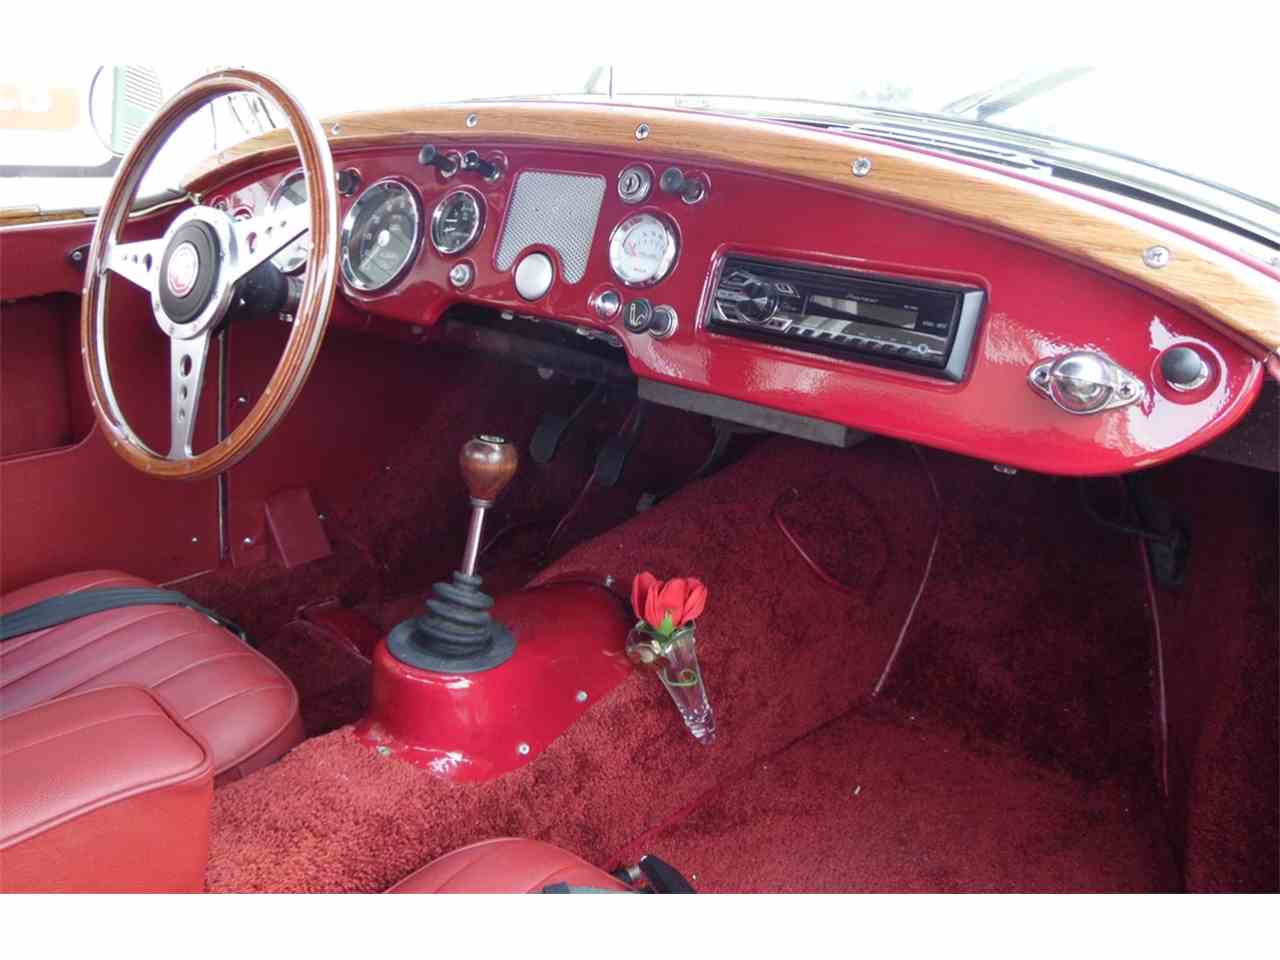 Large Picture of Classic '56 MG MGA located in Redlands California - $19,995.00 - JTIG